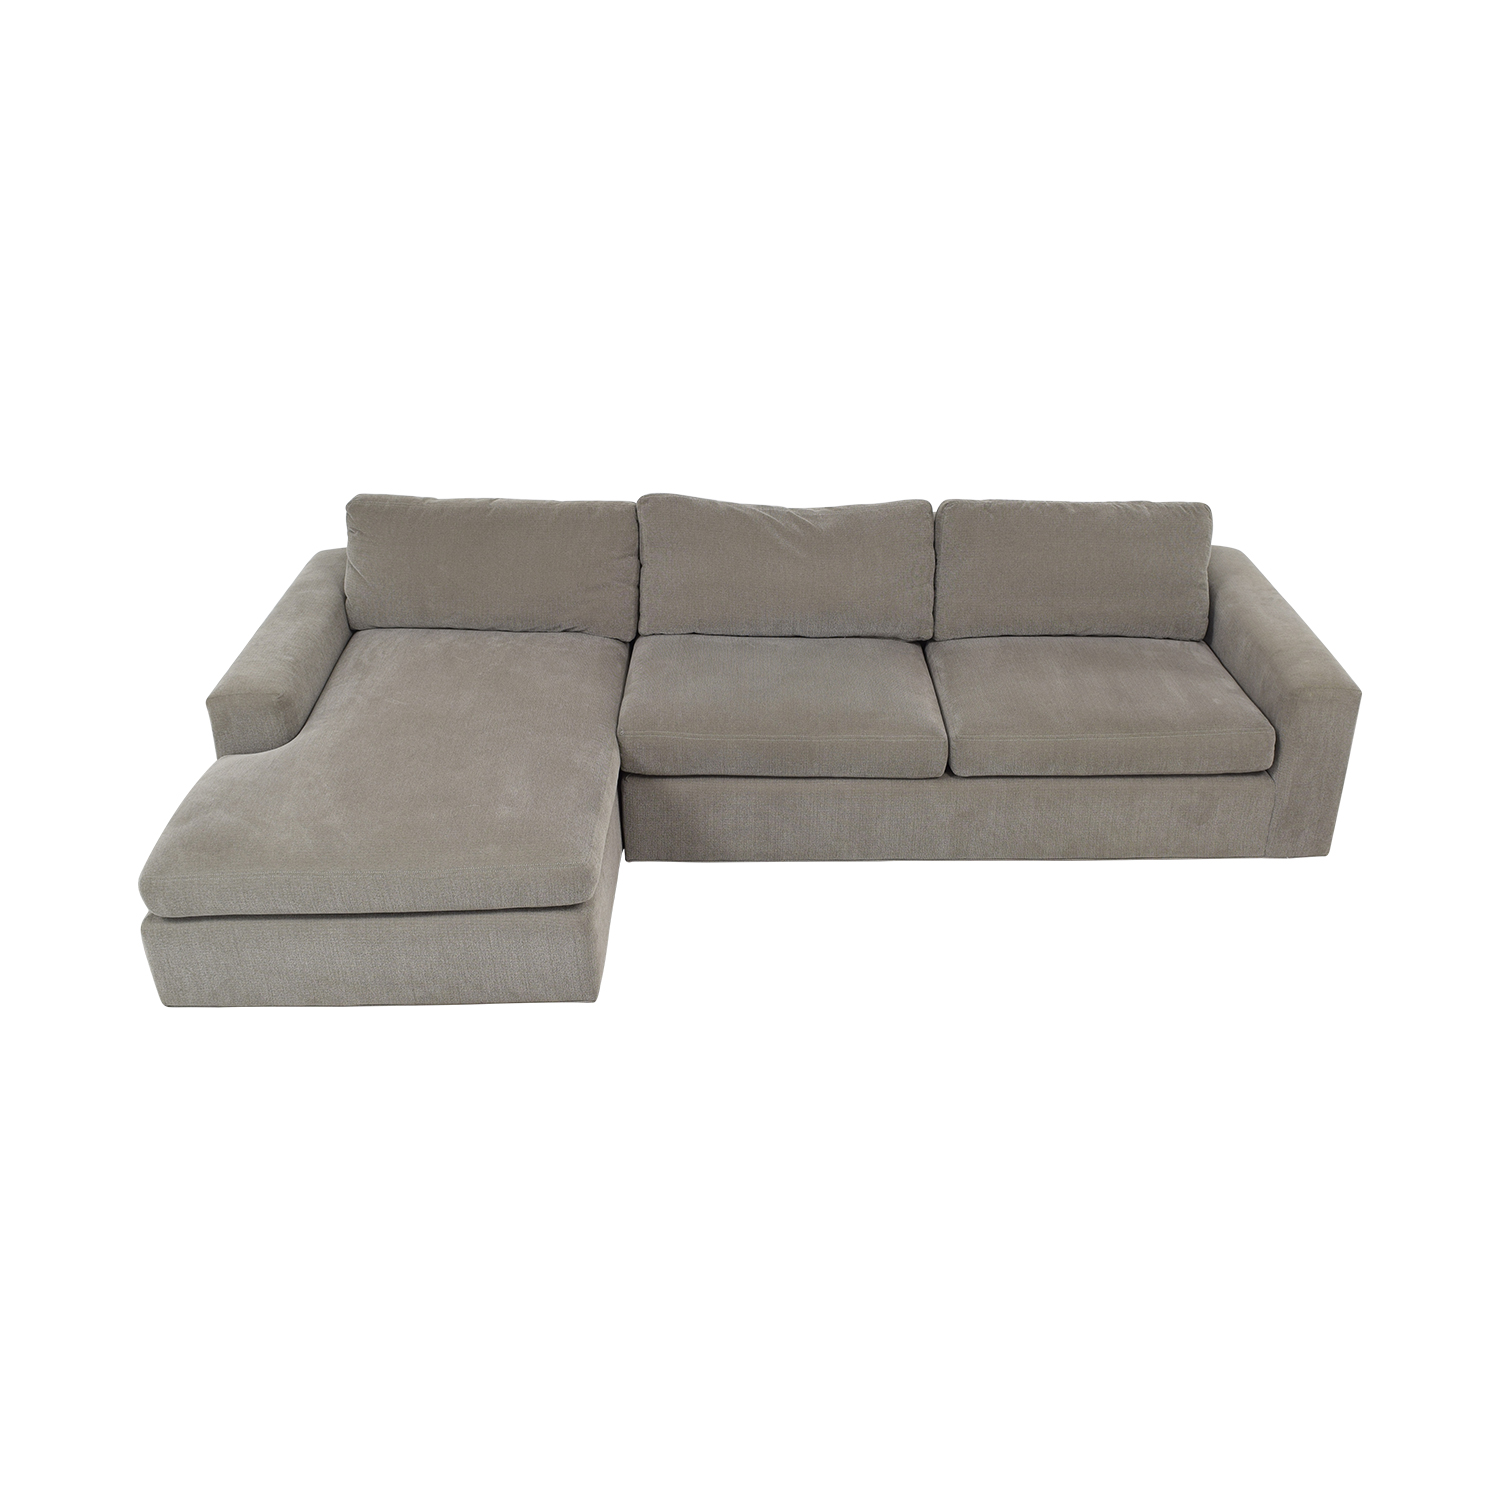 Room & Board Chaise Sectional Sofa Room & Board